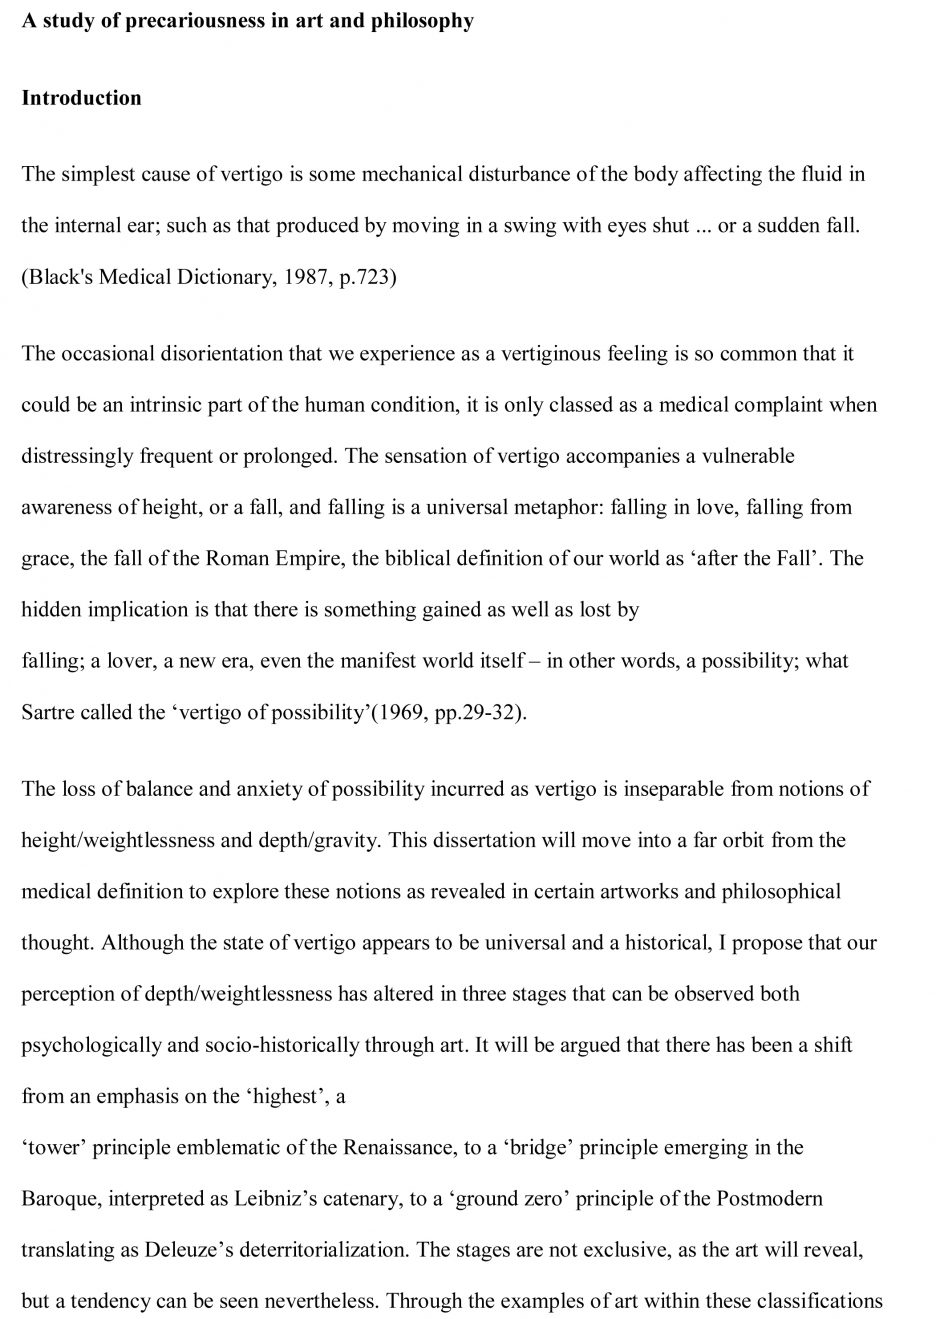 016 Hard Work Essay The Key Success Art Coursework Sample Essays On In Hindi Is To Wikipedia Pays Off Brings Students Life Always Role Of And Dedication 936x1319 Wonderful Urdu Example Full